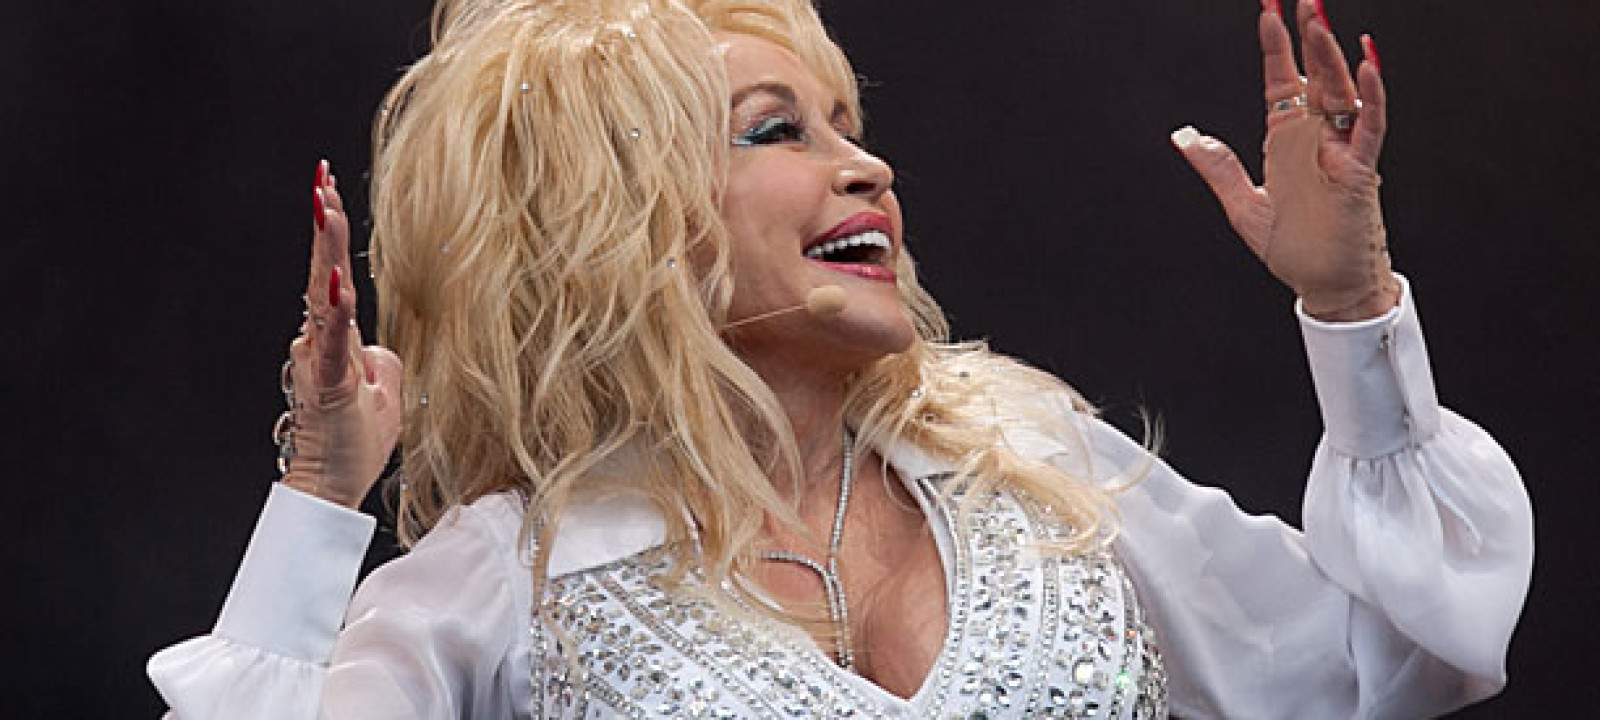 Dolly Parton at Glastobury 2014 (Pic: Matt Cardy/Getty Images)